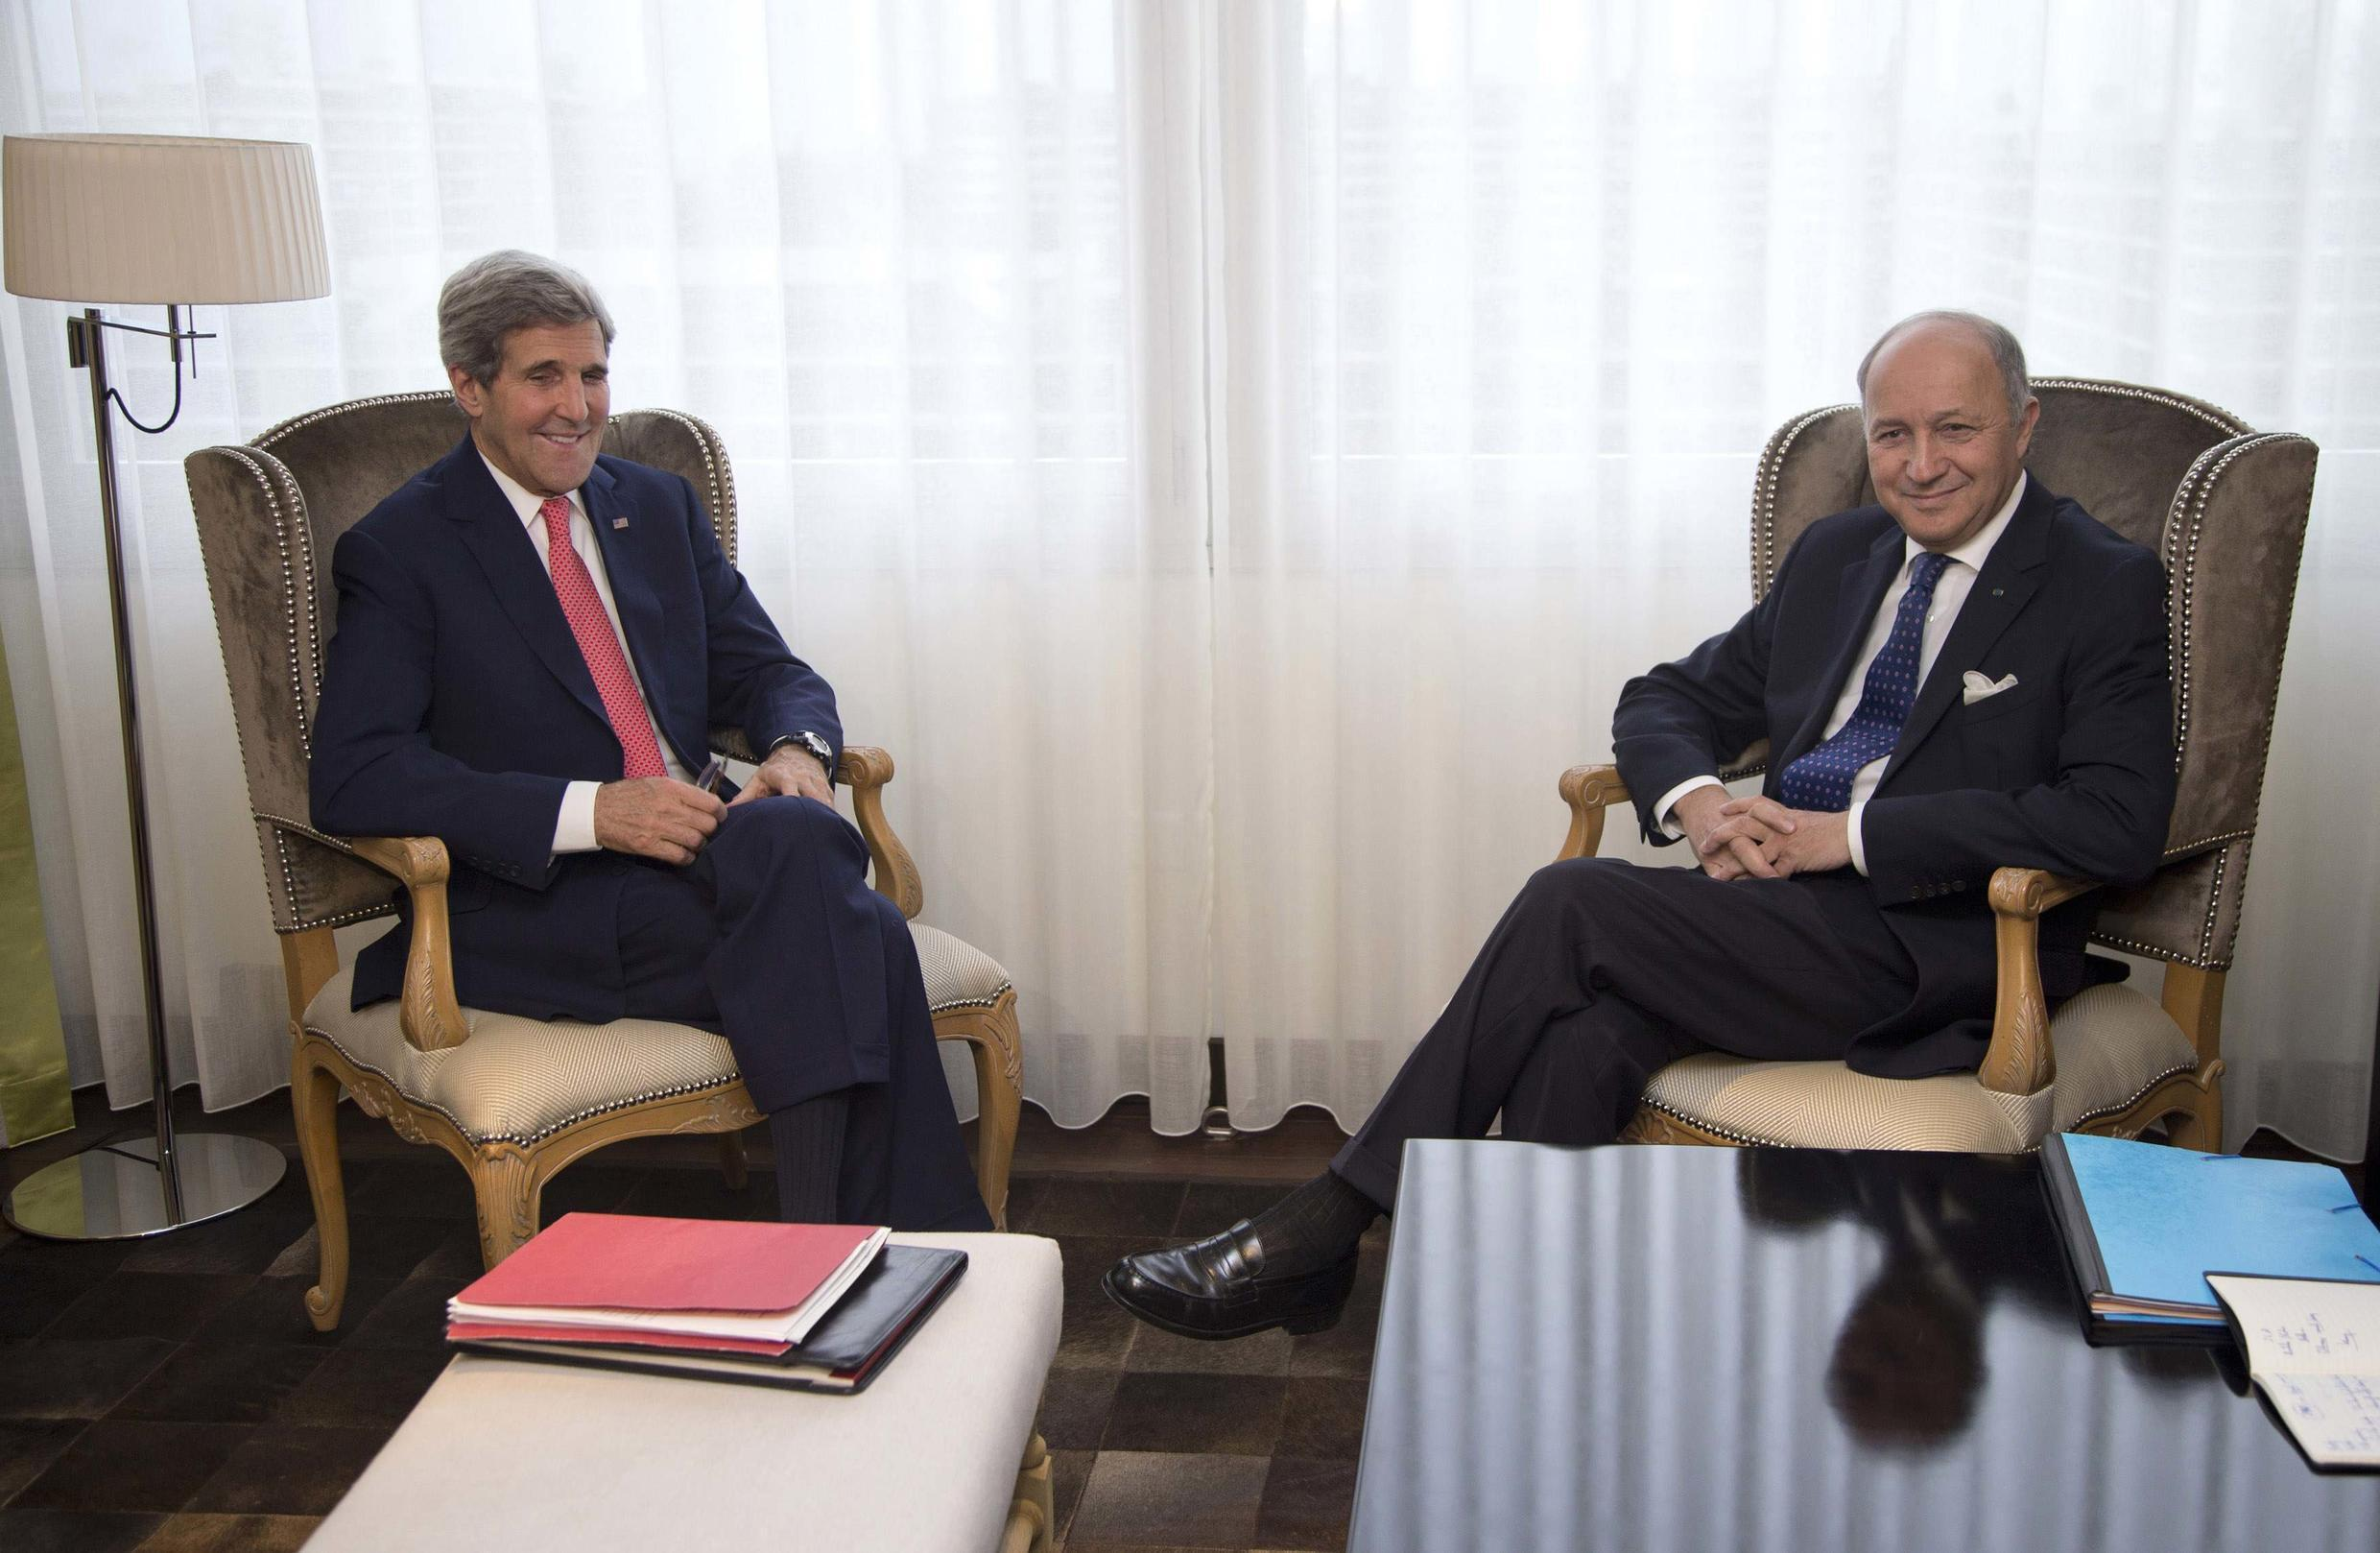 U.S. Secretary of State John Kerry and French Foreign Minister Laurent Fabius meeting ahead of Iran nuclear talks in Geneva on November 23.